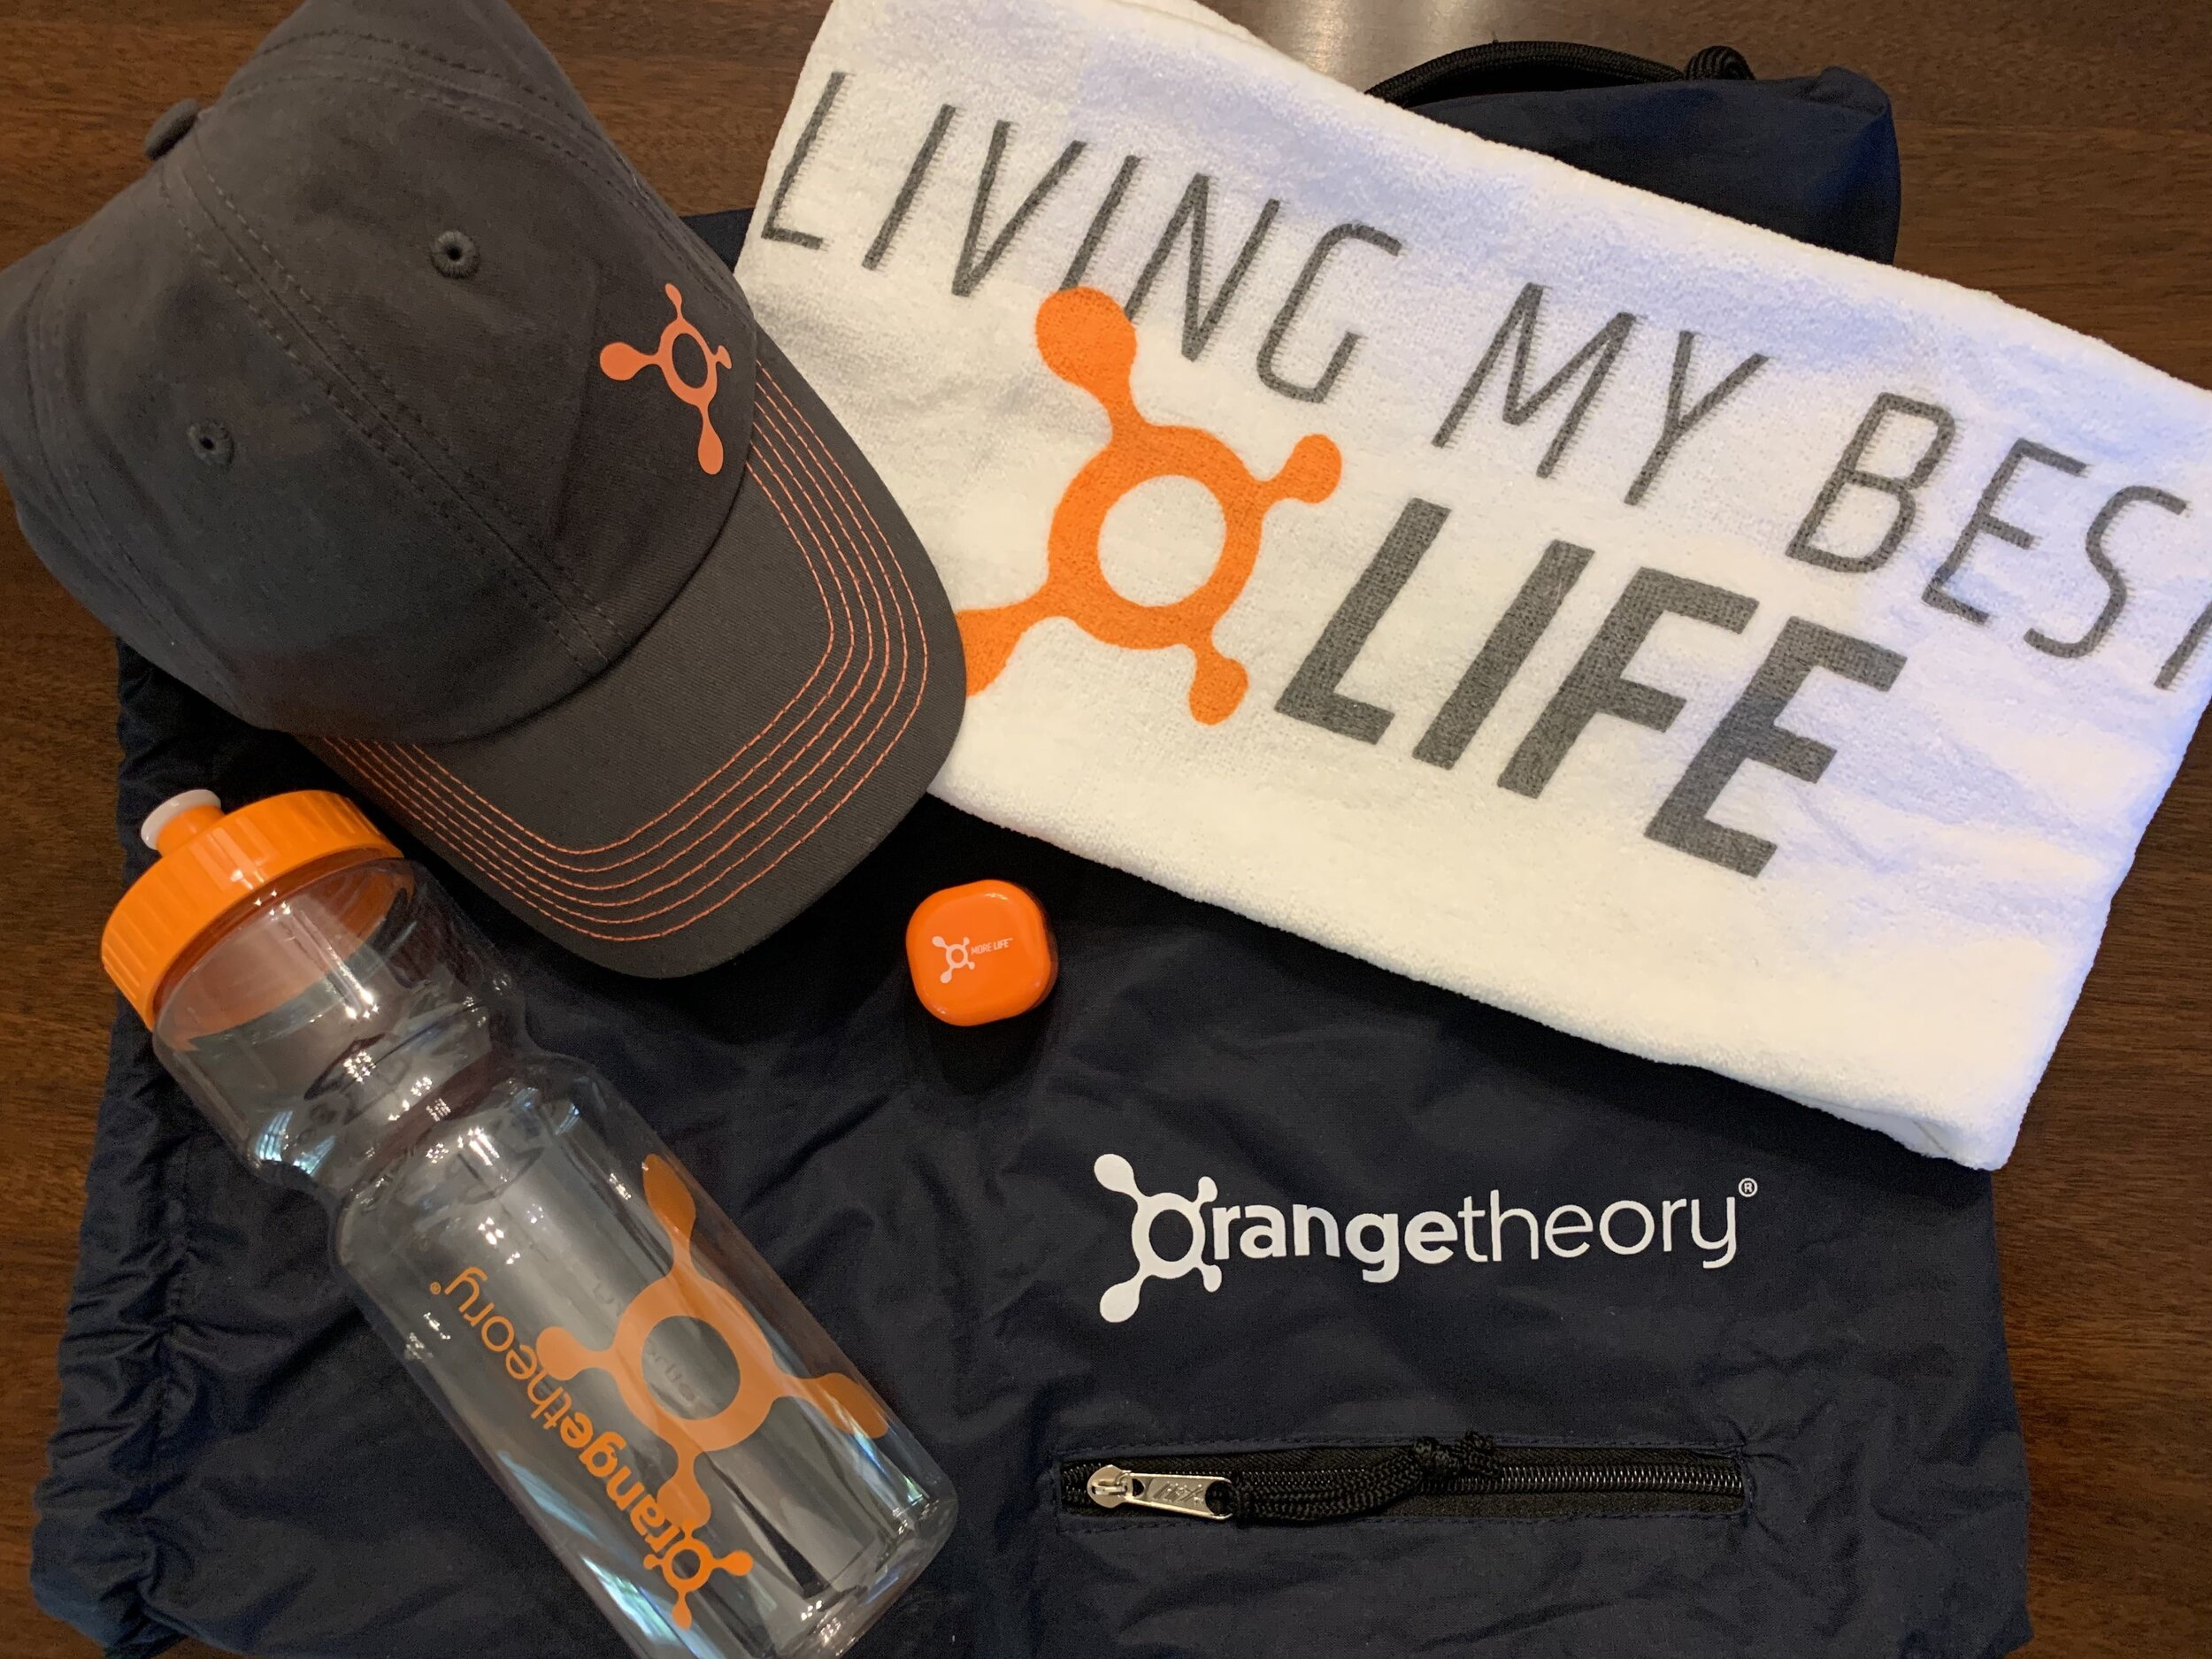 ORANGETHEORY GIFT BAG   Orangetheory's fitness instructors provide inspiration and guidance through your workout and bring results based on your needs. Try it out with this 3-pack voucher good for a total of 3 workouts at the same studio, workout towel, hat and water bottle all in a drawstring bag.  DONOR: Orangetheory Greer VALUE: $125